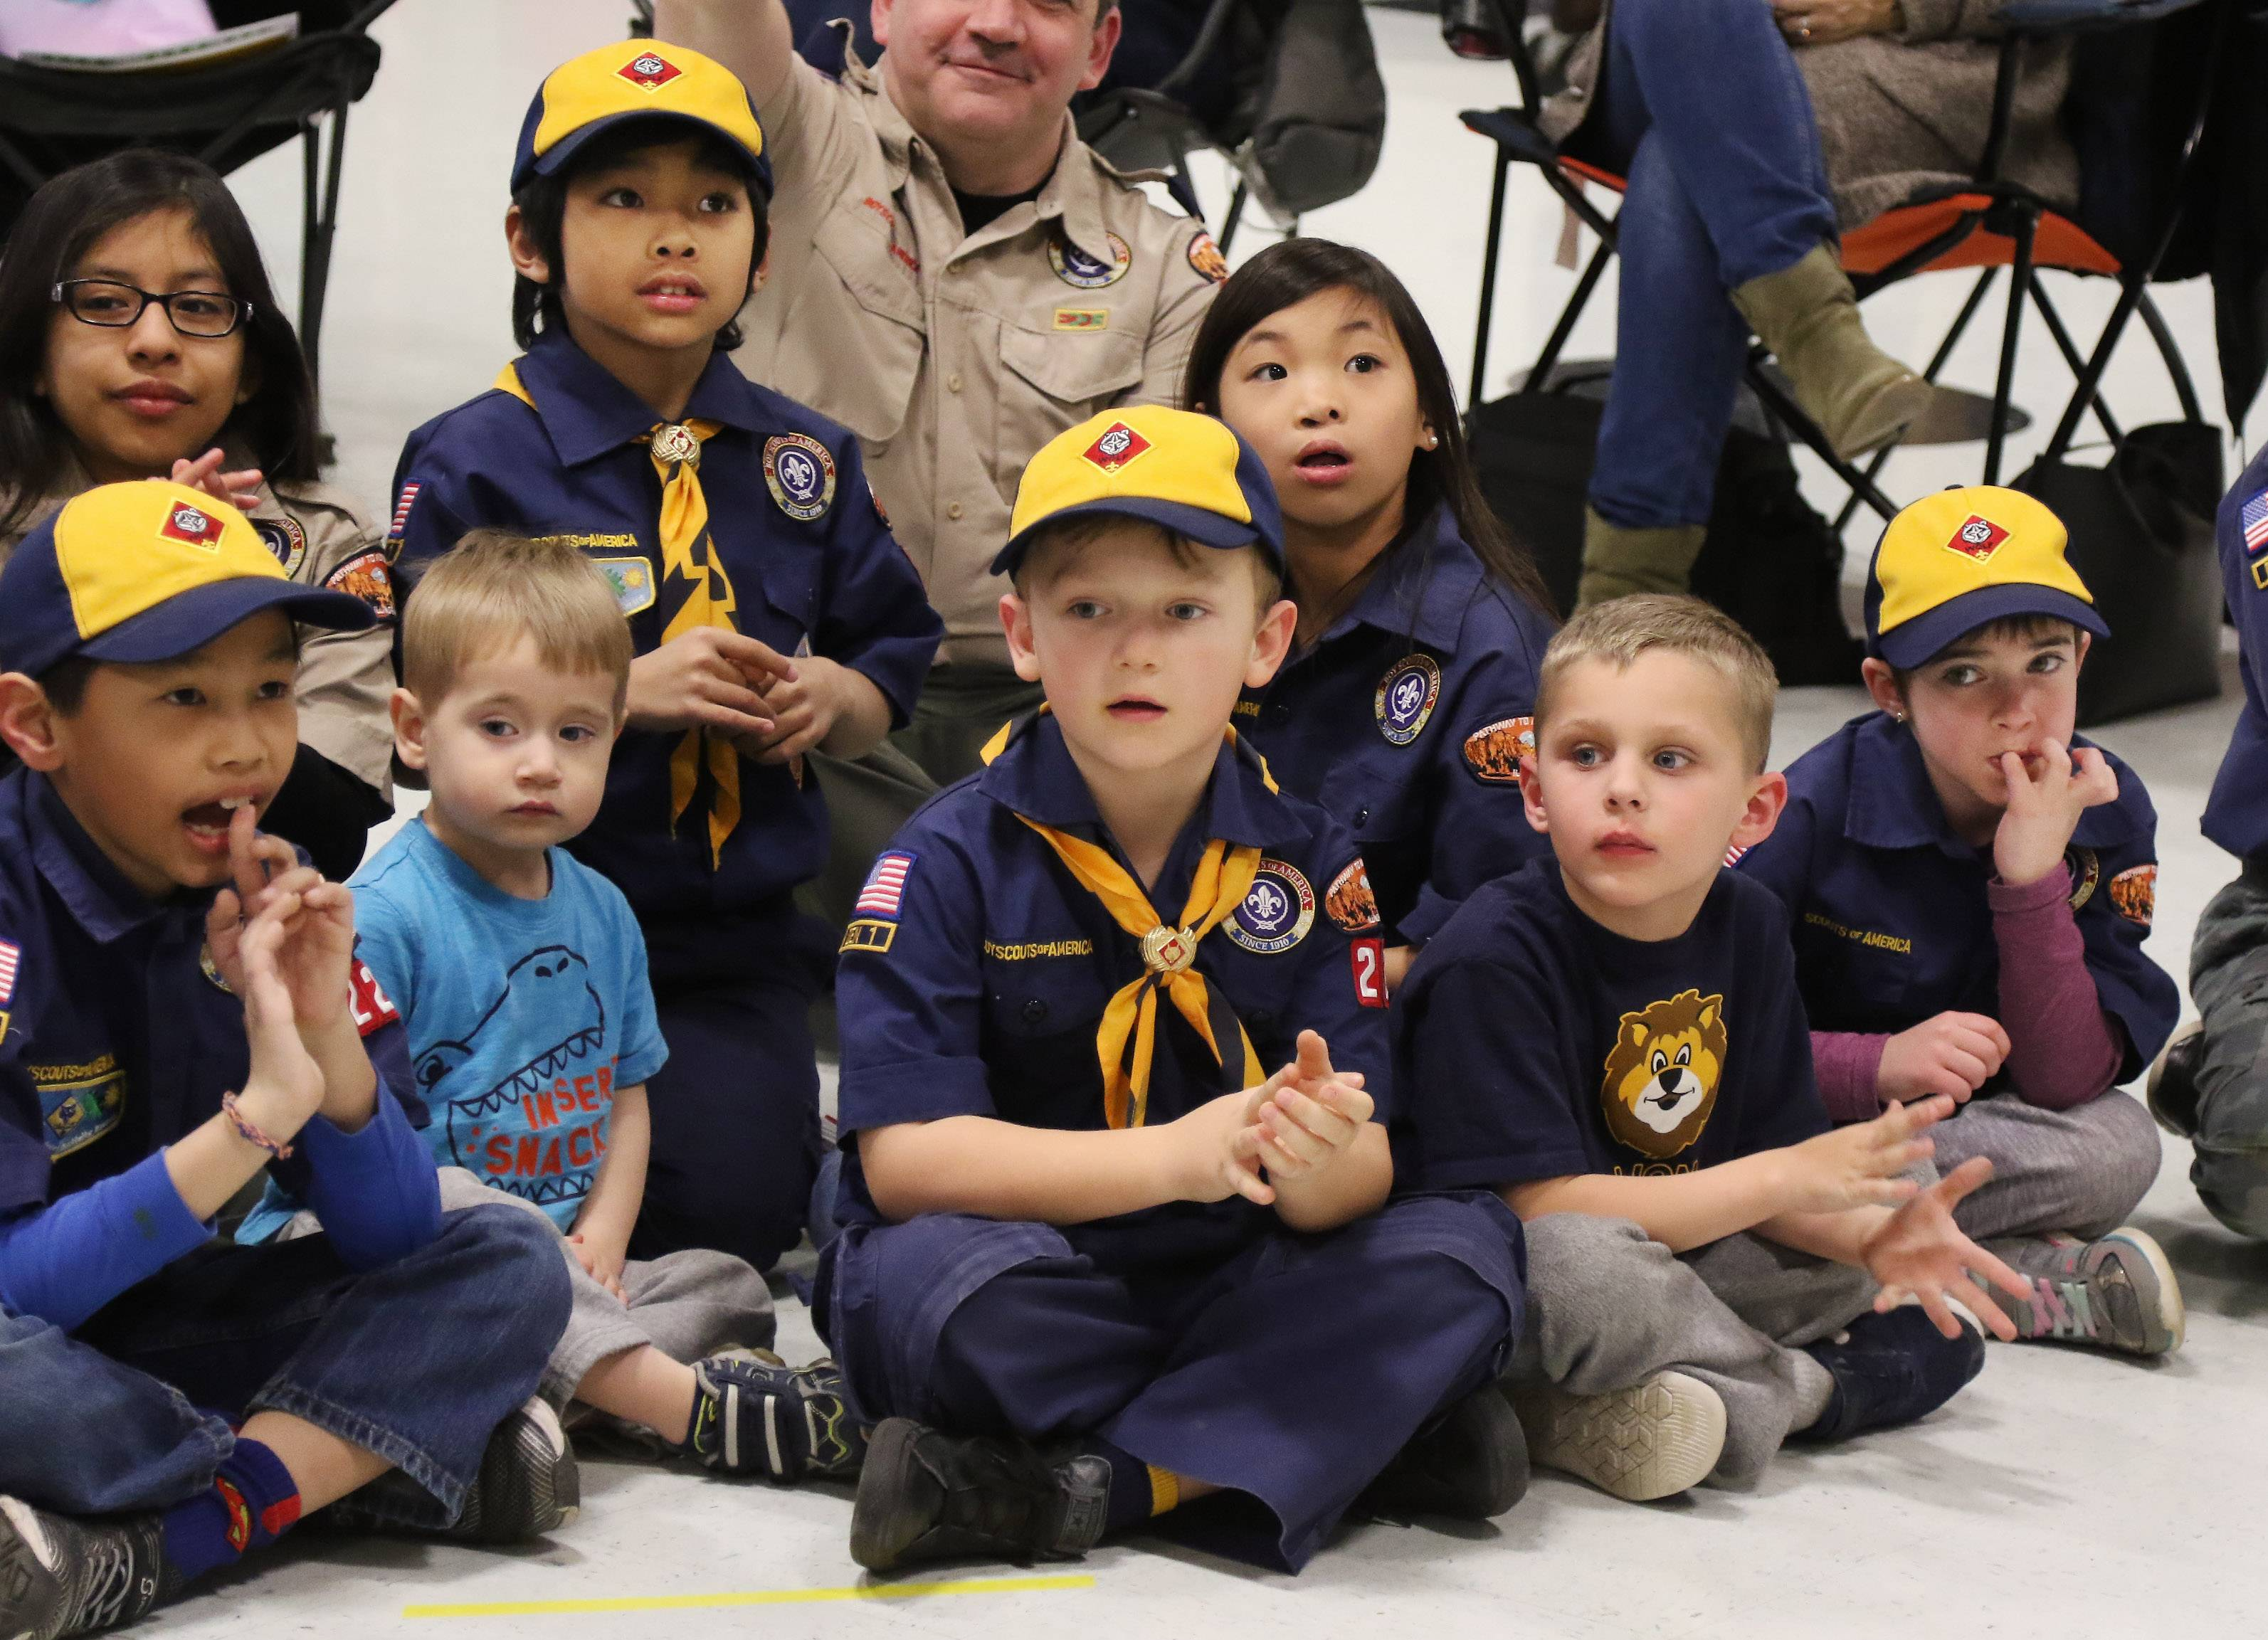 Boys and girls watch a skit during a meeting of Cub Scouts Pack 229, one of the first in the region to allow girls before all Cub Scouting units will be open to female participants June 11.